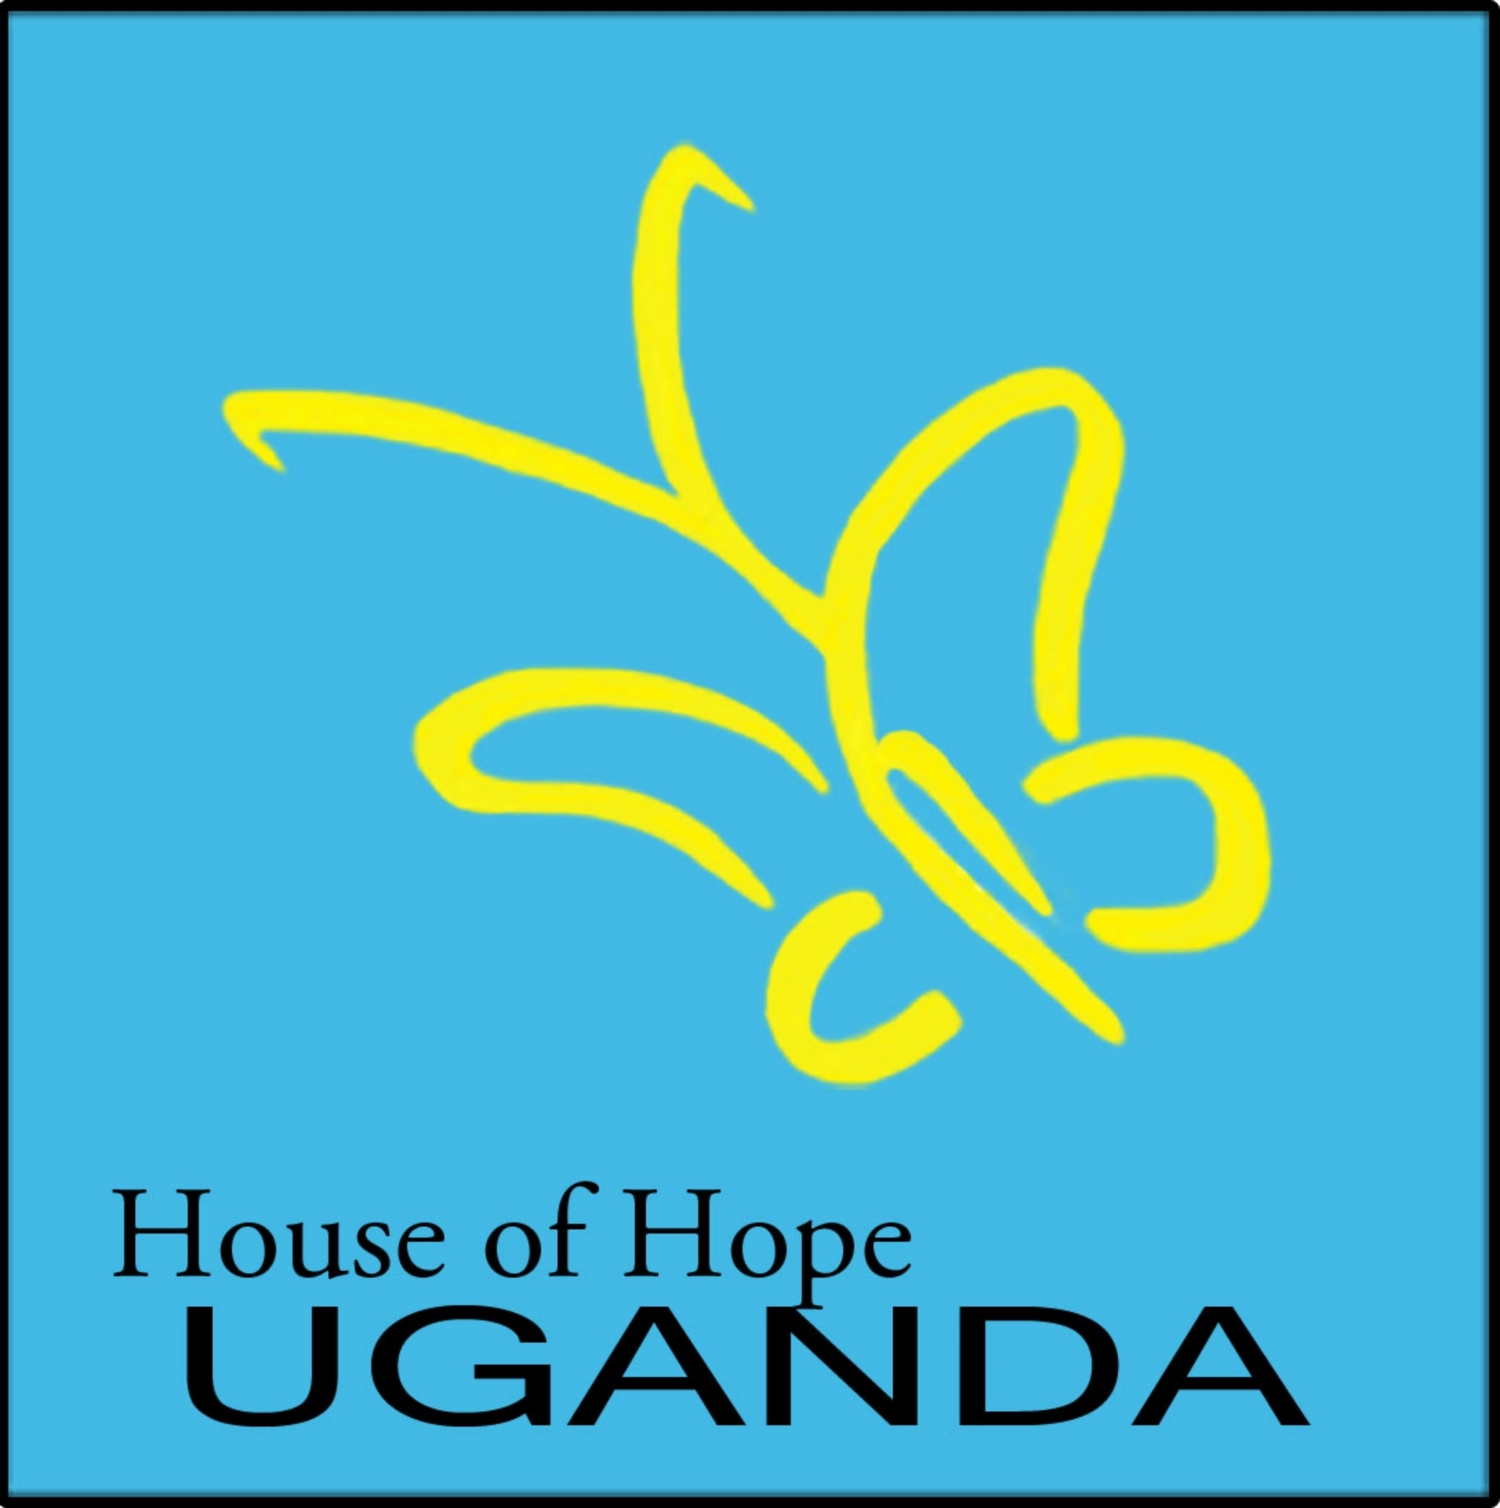 House of Hope Uganda